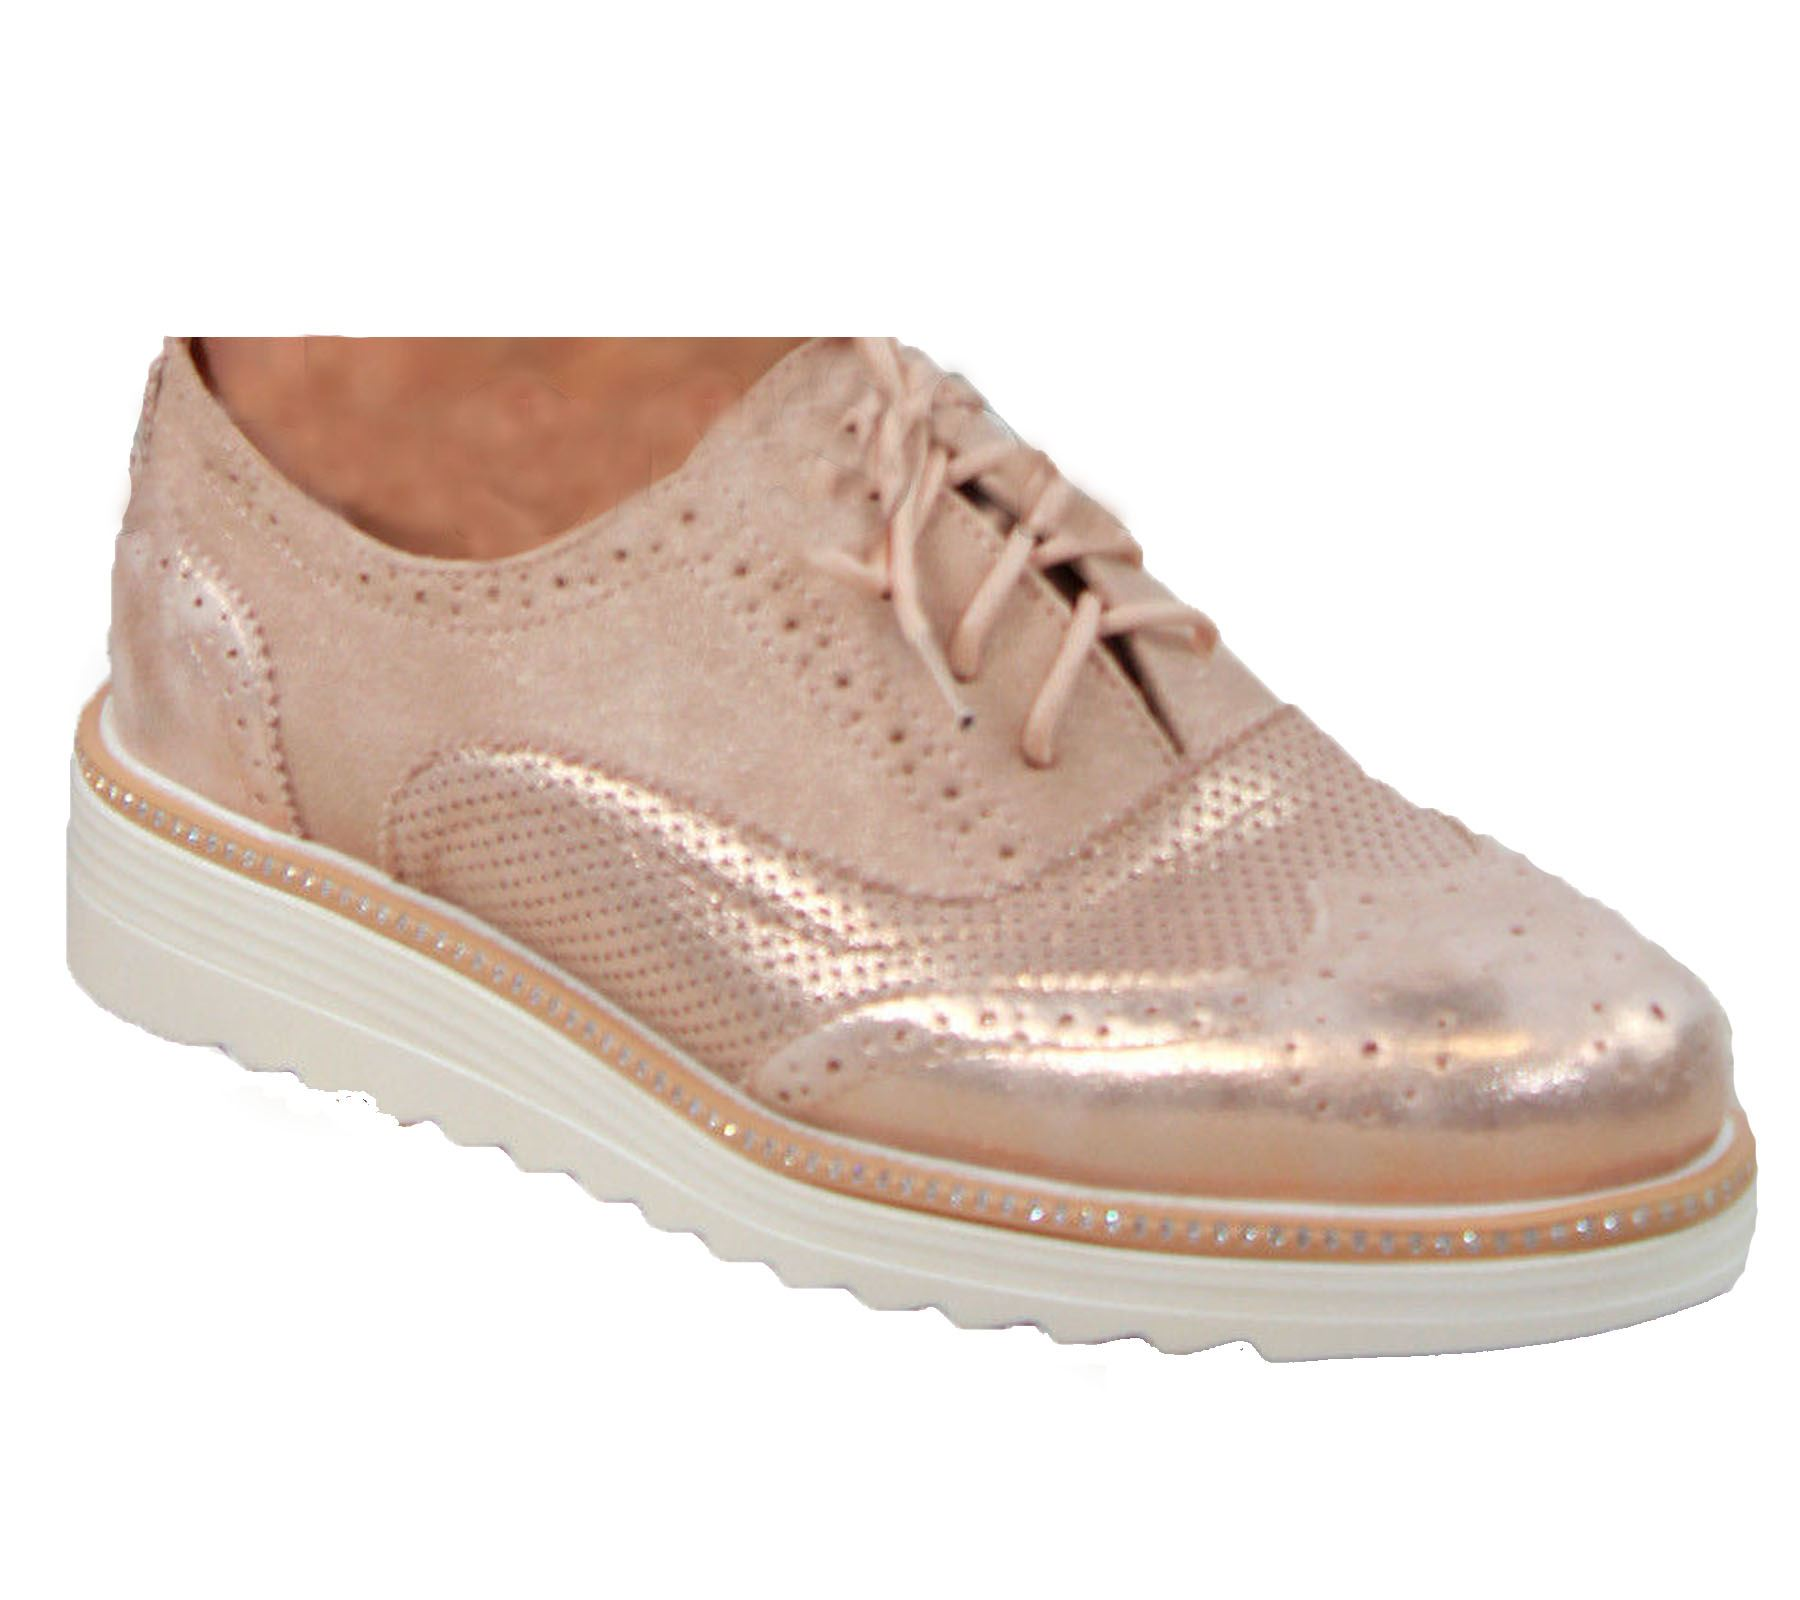 Ladies-Brogue-Lace-Up-Shoes-Womens-Oxford-Smart-Office-Loafers-Shoes miniatura 35